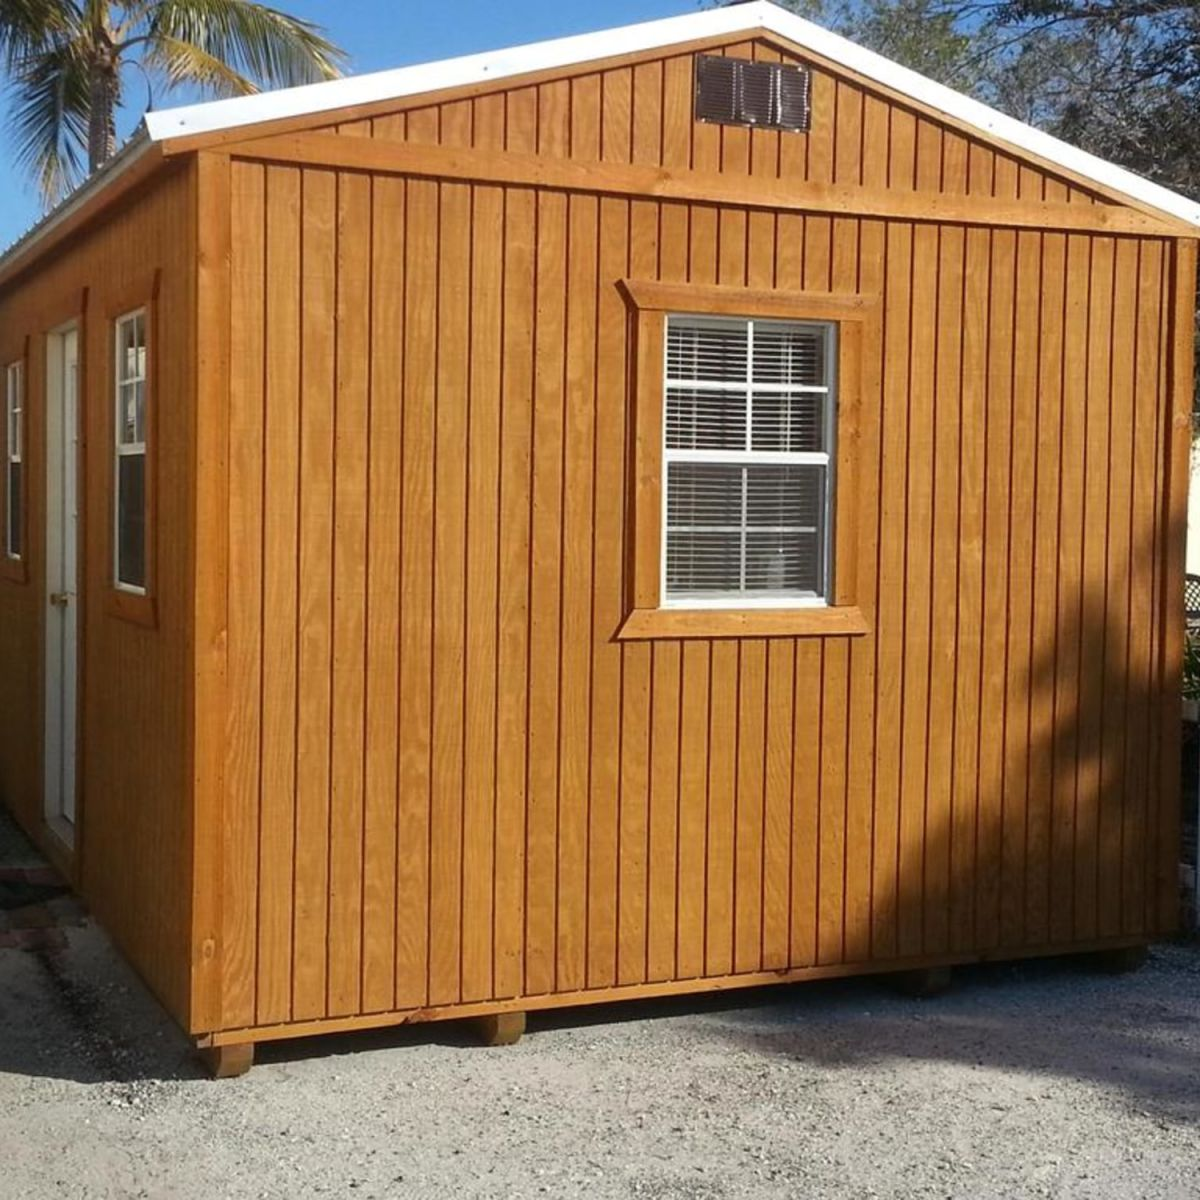 OWNER FINANCE THIS 12X16 OFFICE / STUDIO - Tiny House for Sale in FT  PIERCE, Florida - Tiny House Listings